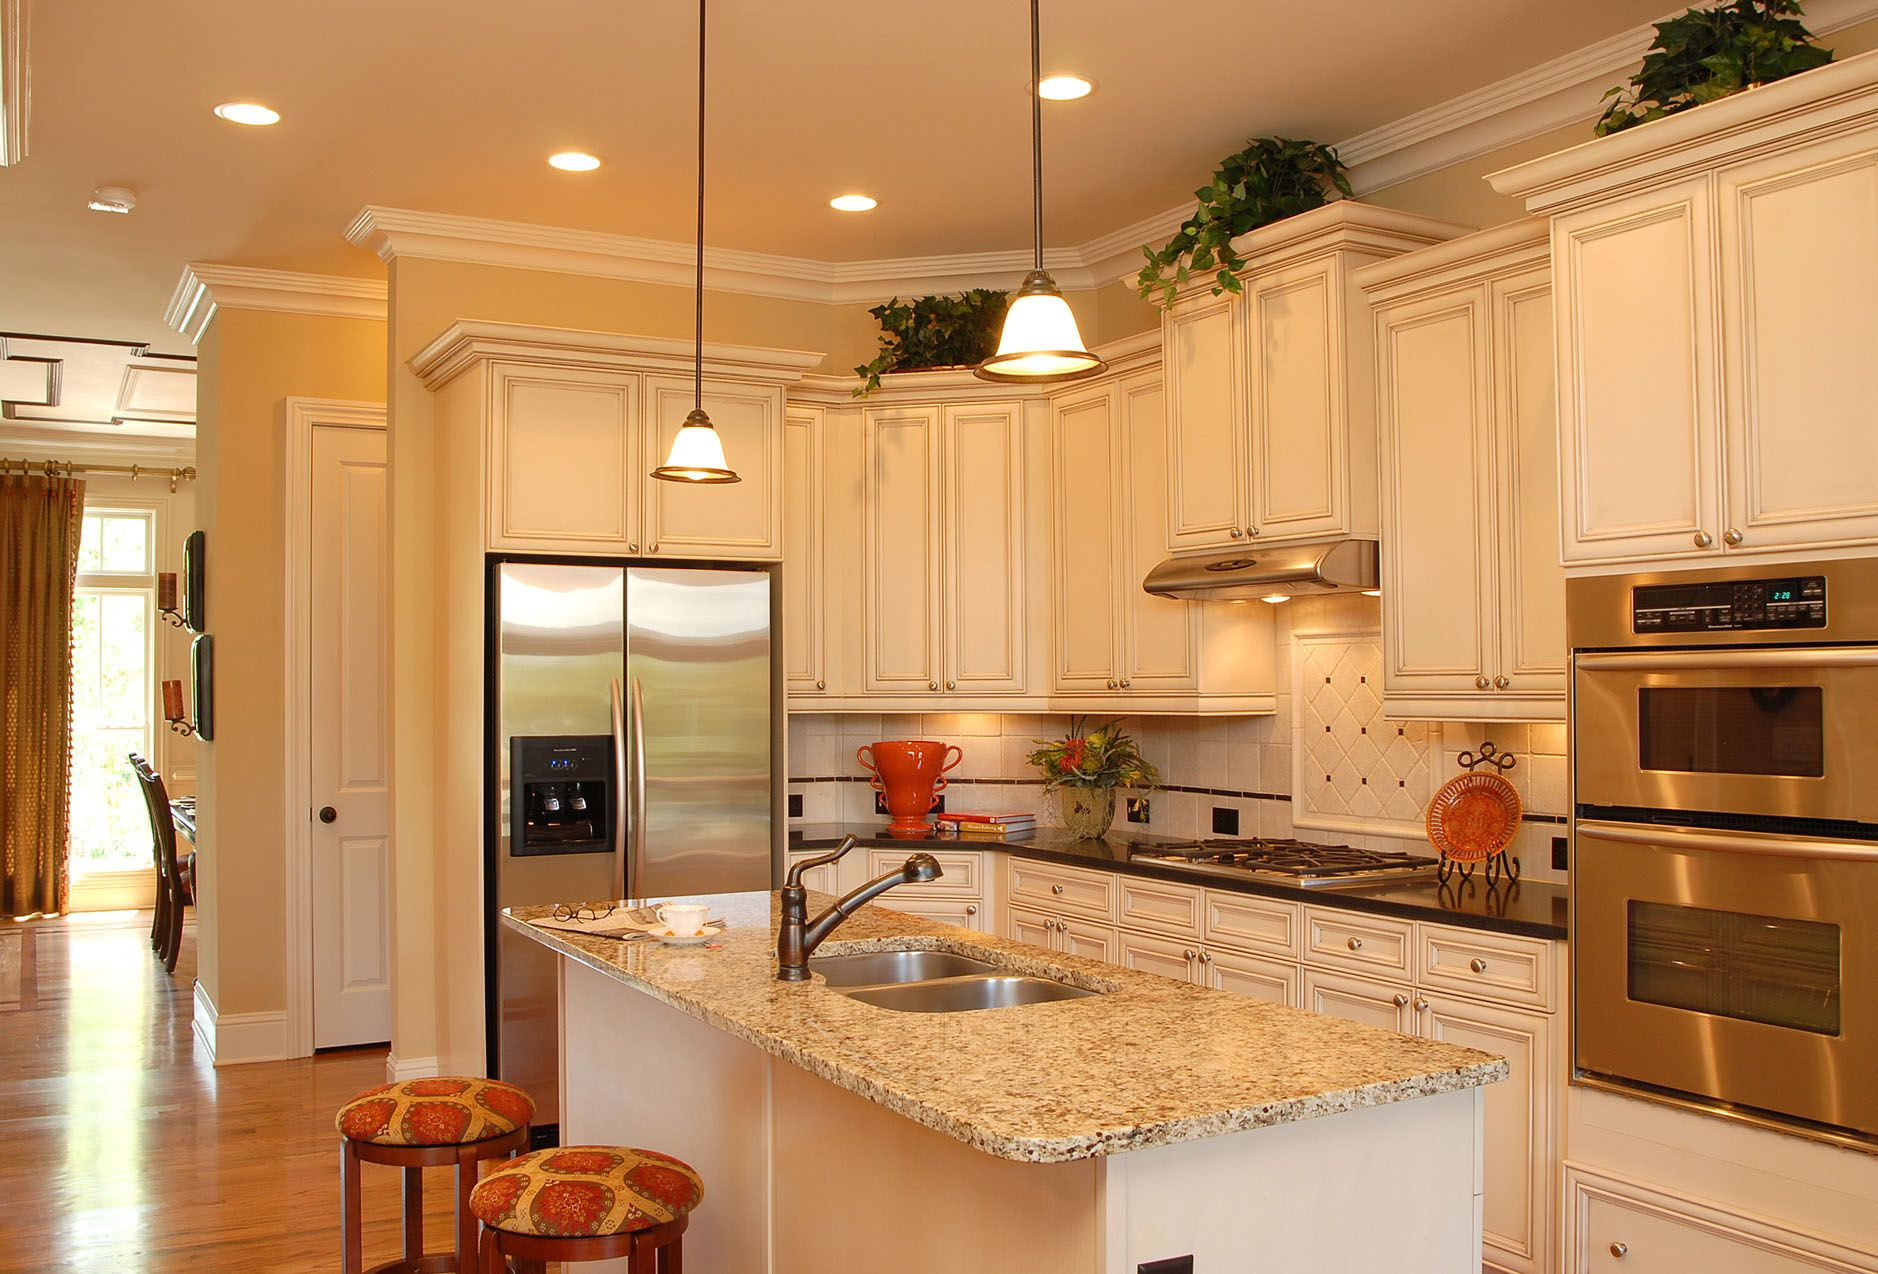 White Cabinets And Satin Nickel The Providence Group Atlanta